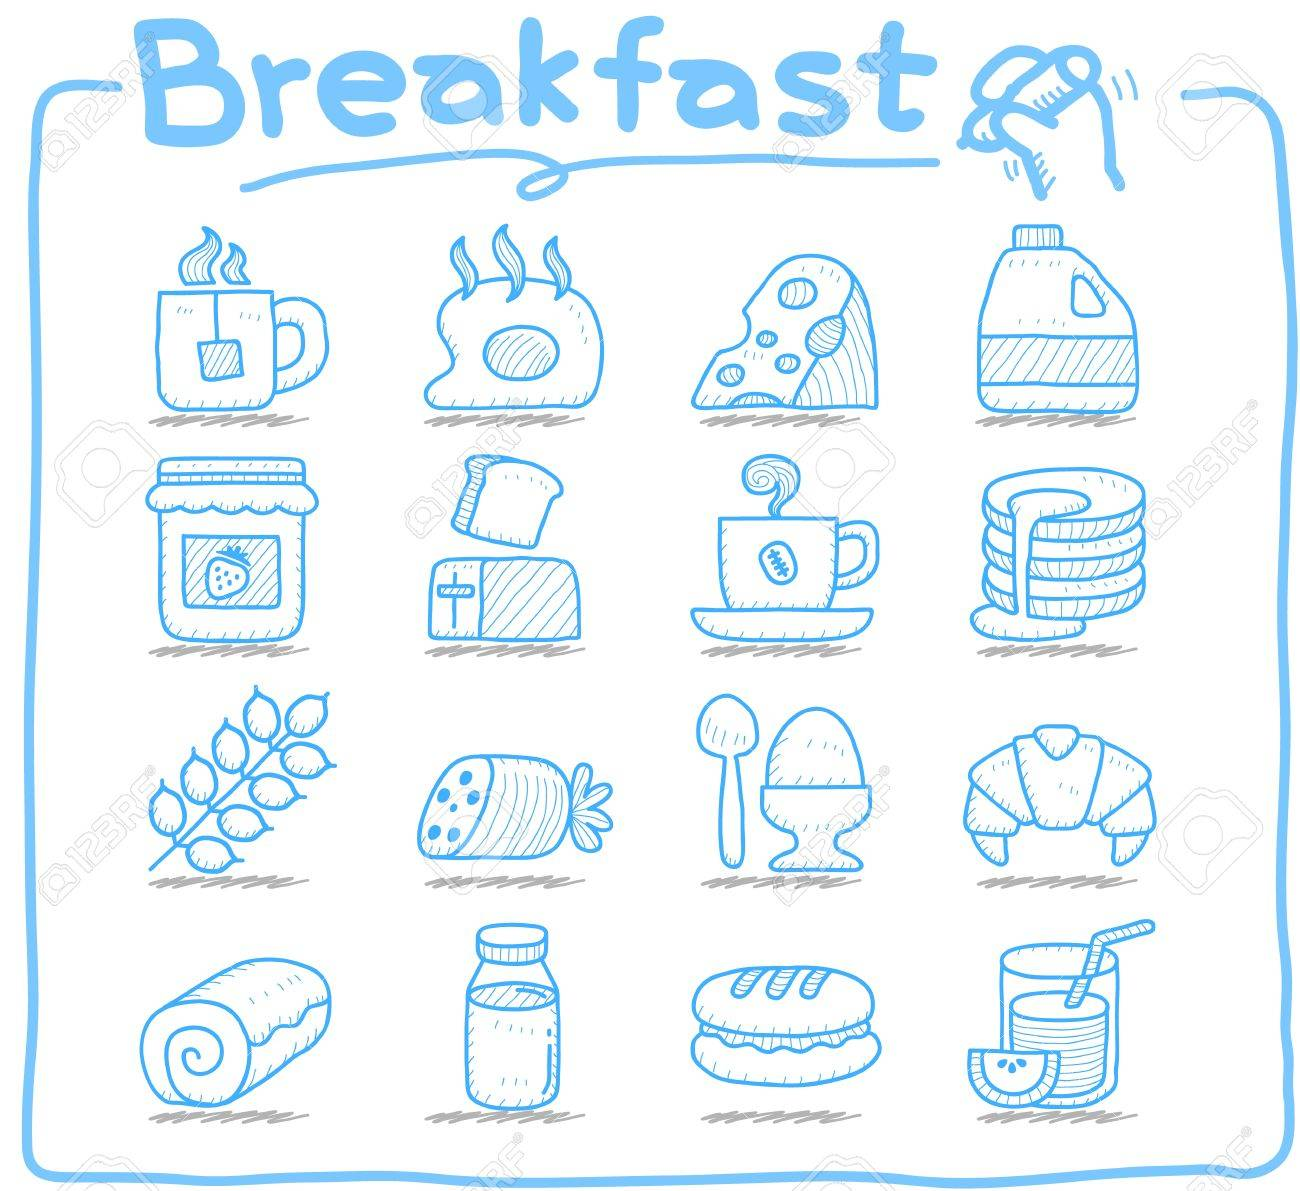 Pure series  Hand drawn  Breakfast, food  icon set Stock Vector - 13106786